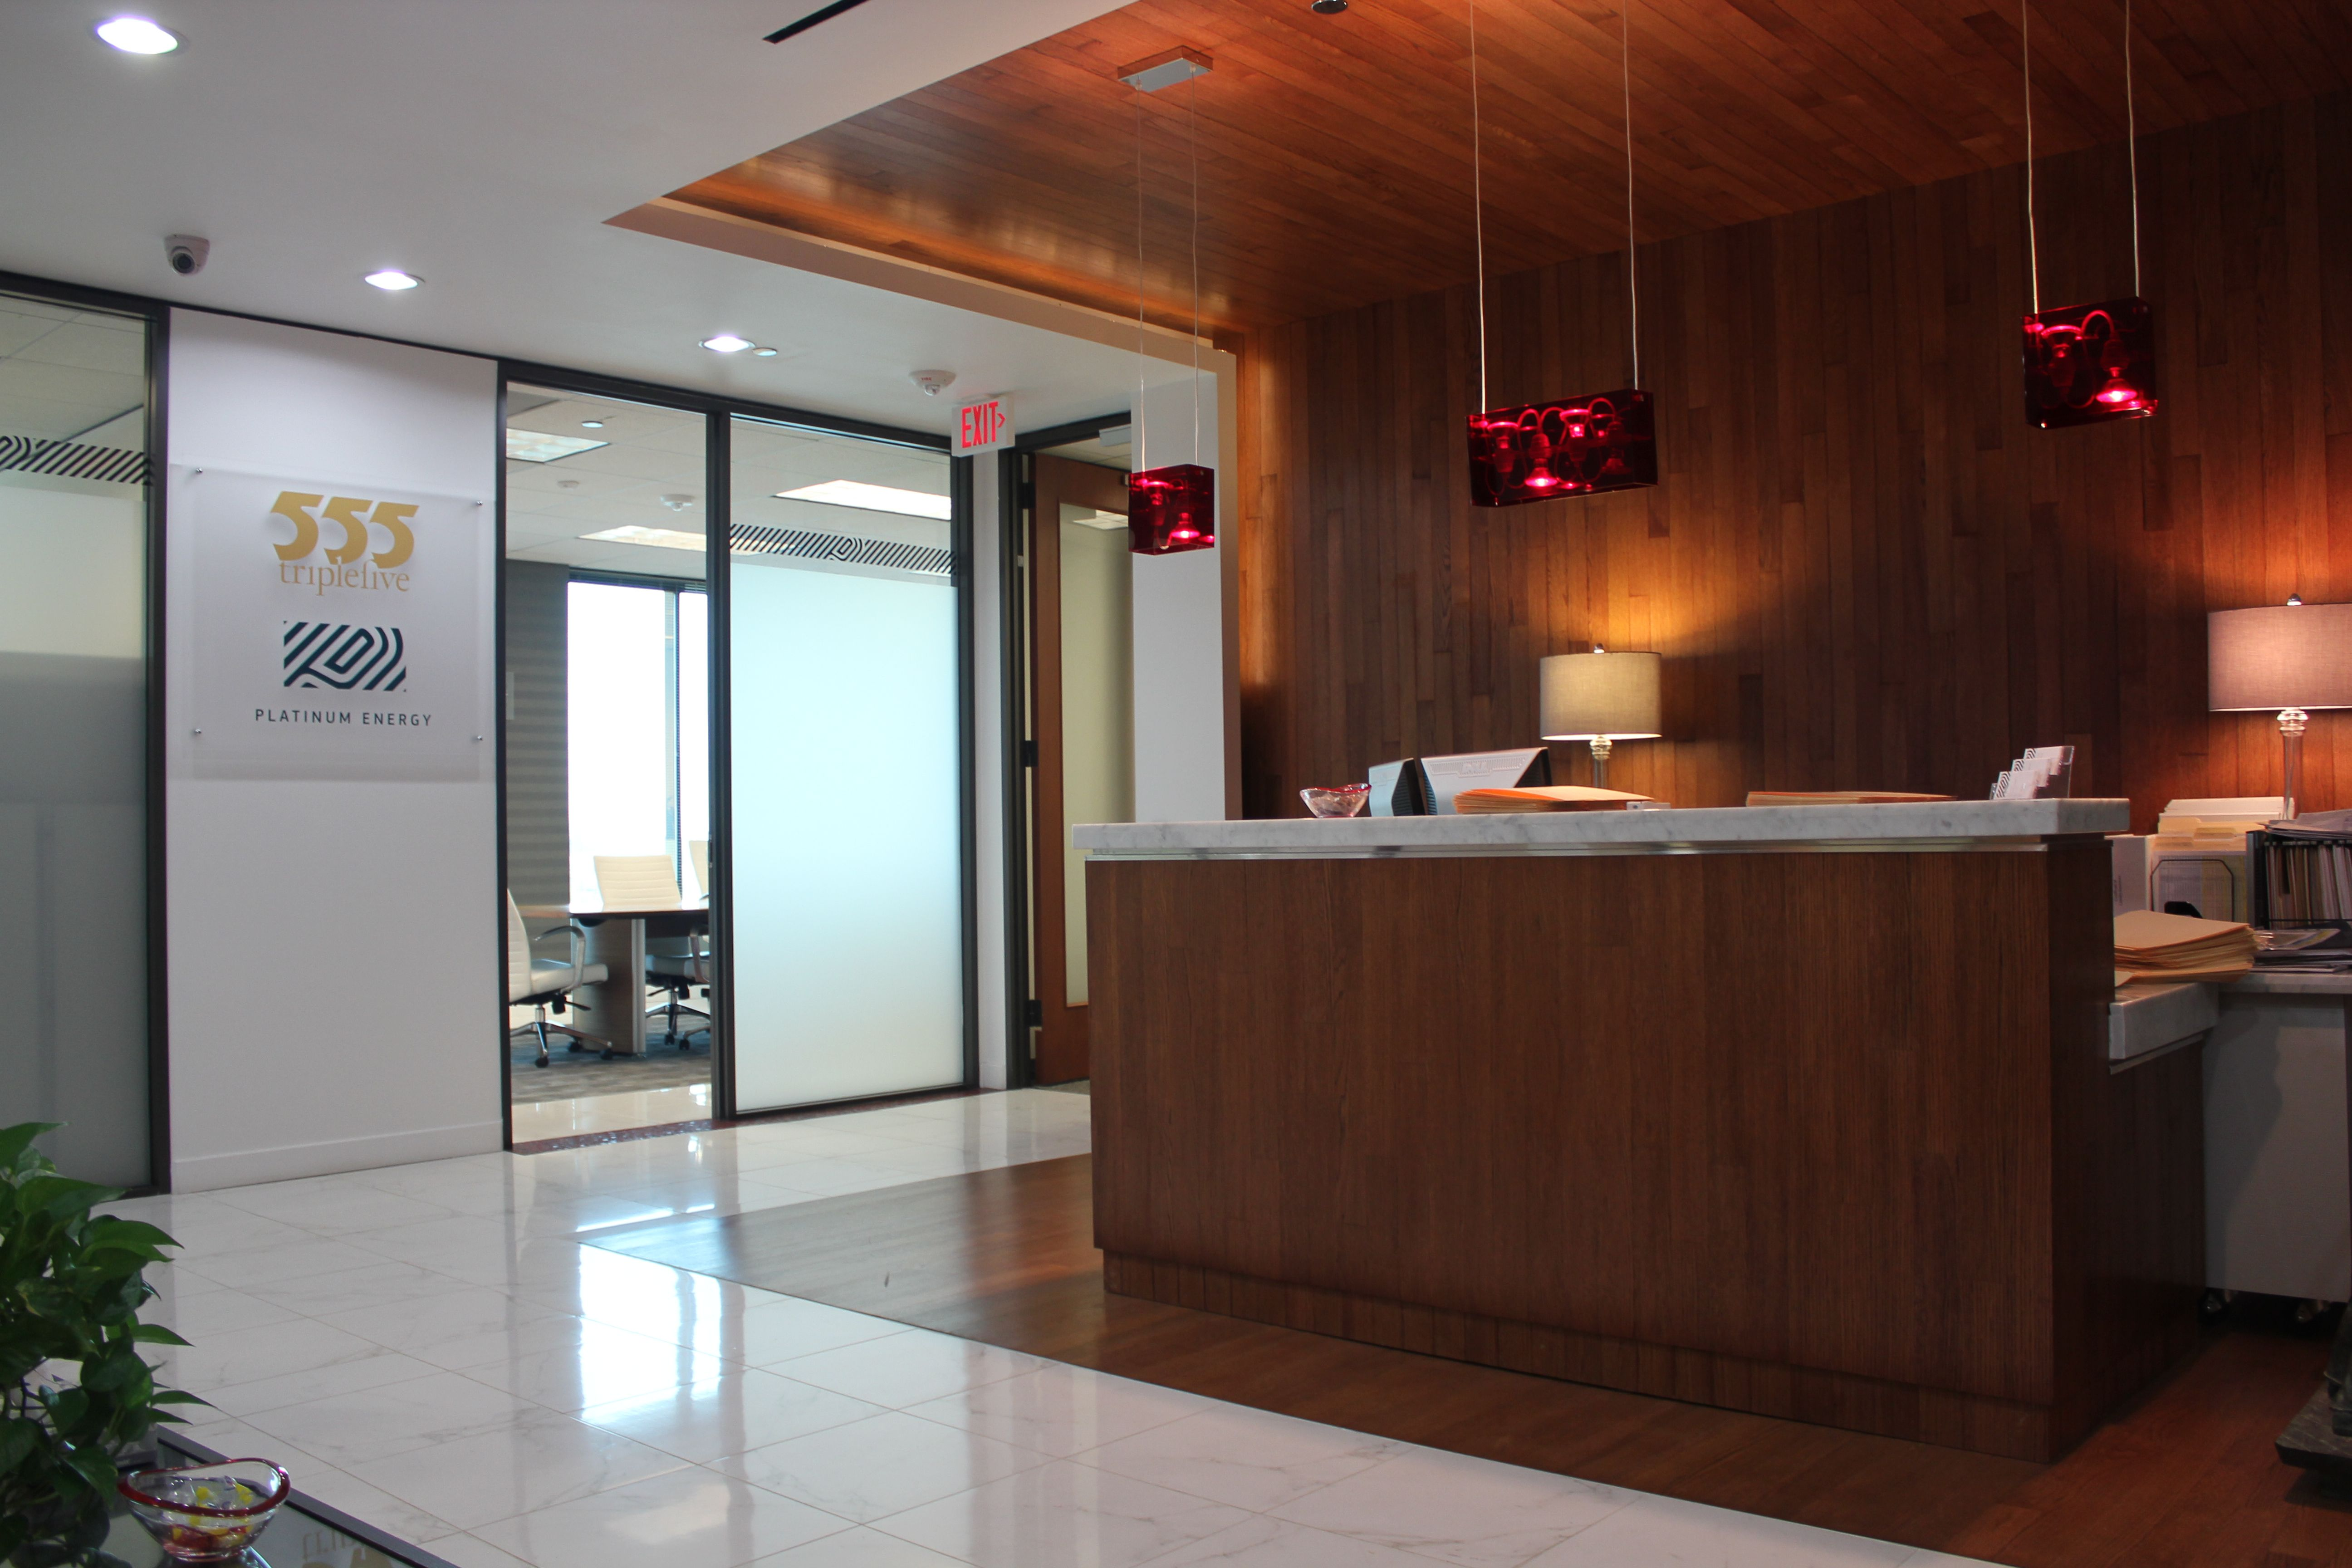 Platinum Energy offices. Custom commercial space. www.builtbyhabitat.com